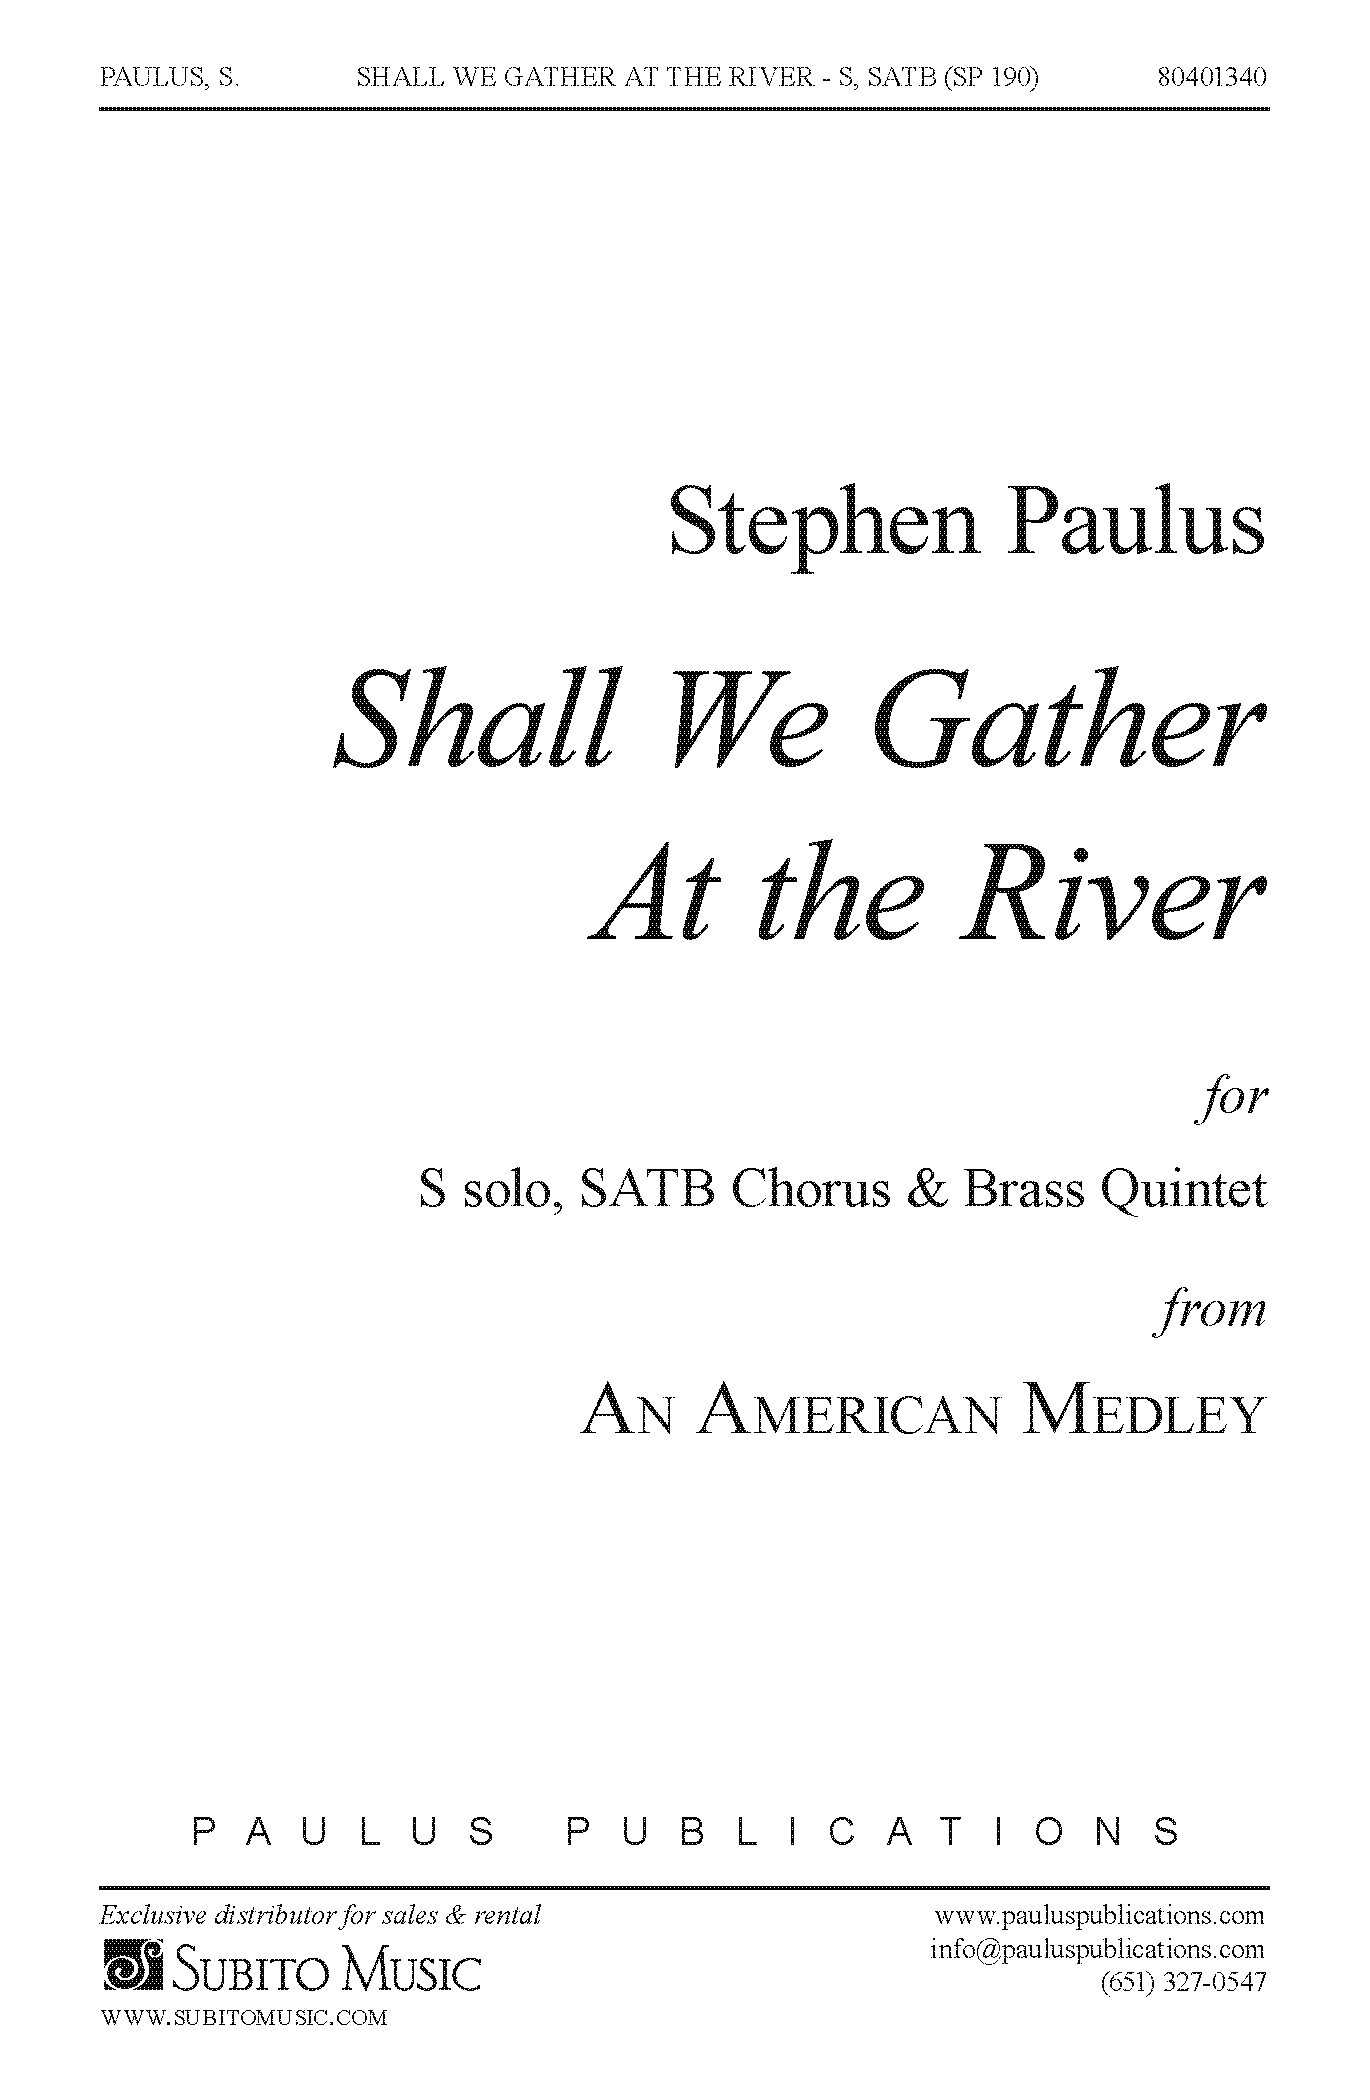 Shall We Gather at the River for SATB Chorus & Brass Quintet